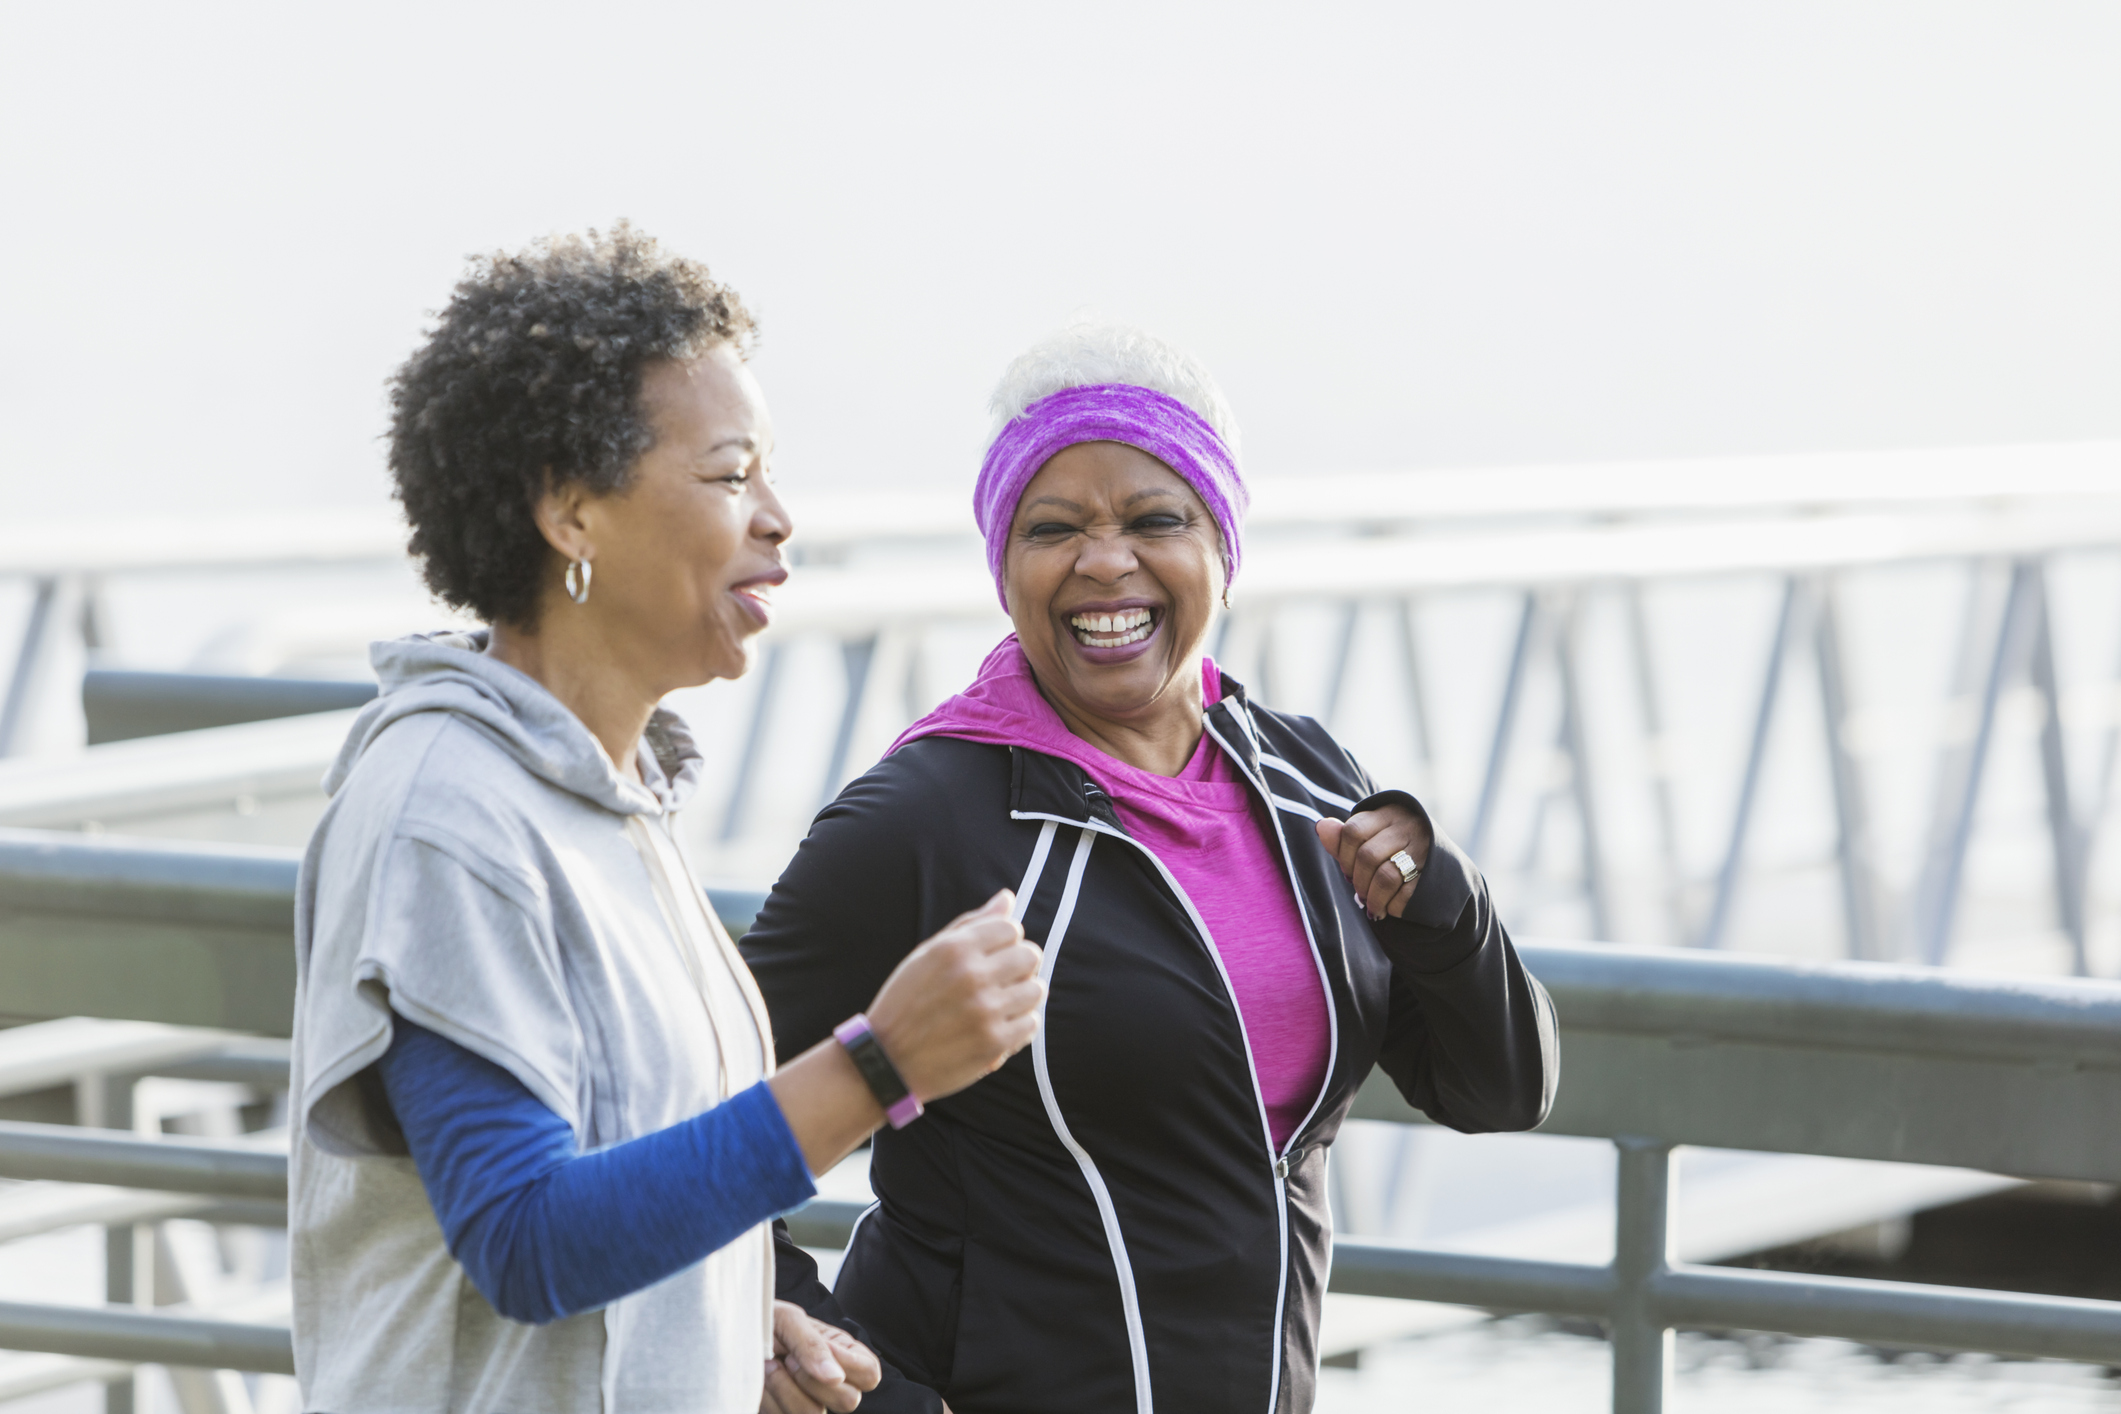 exercise and fitness two black women walking outdoors